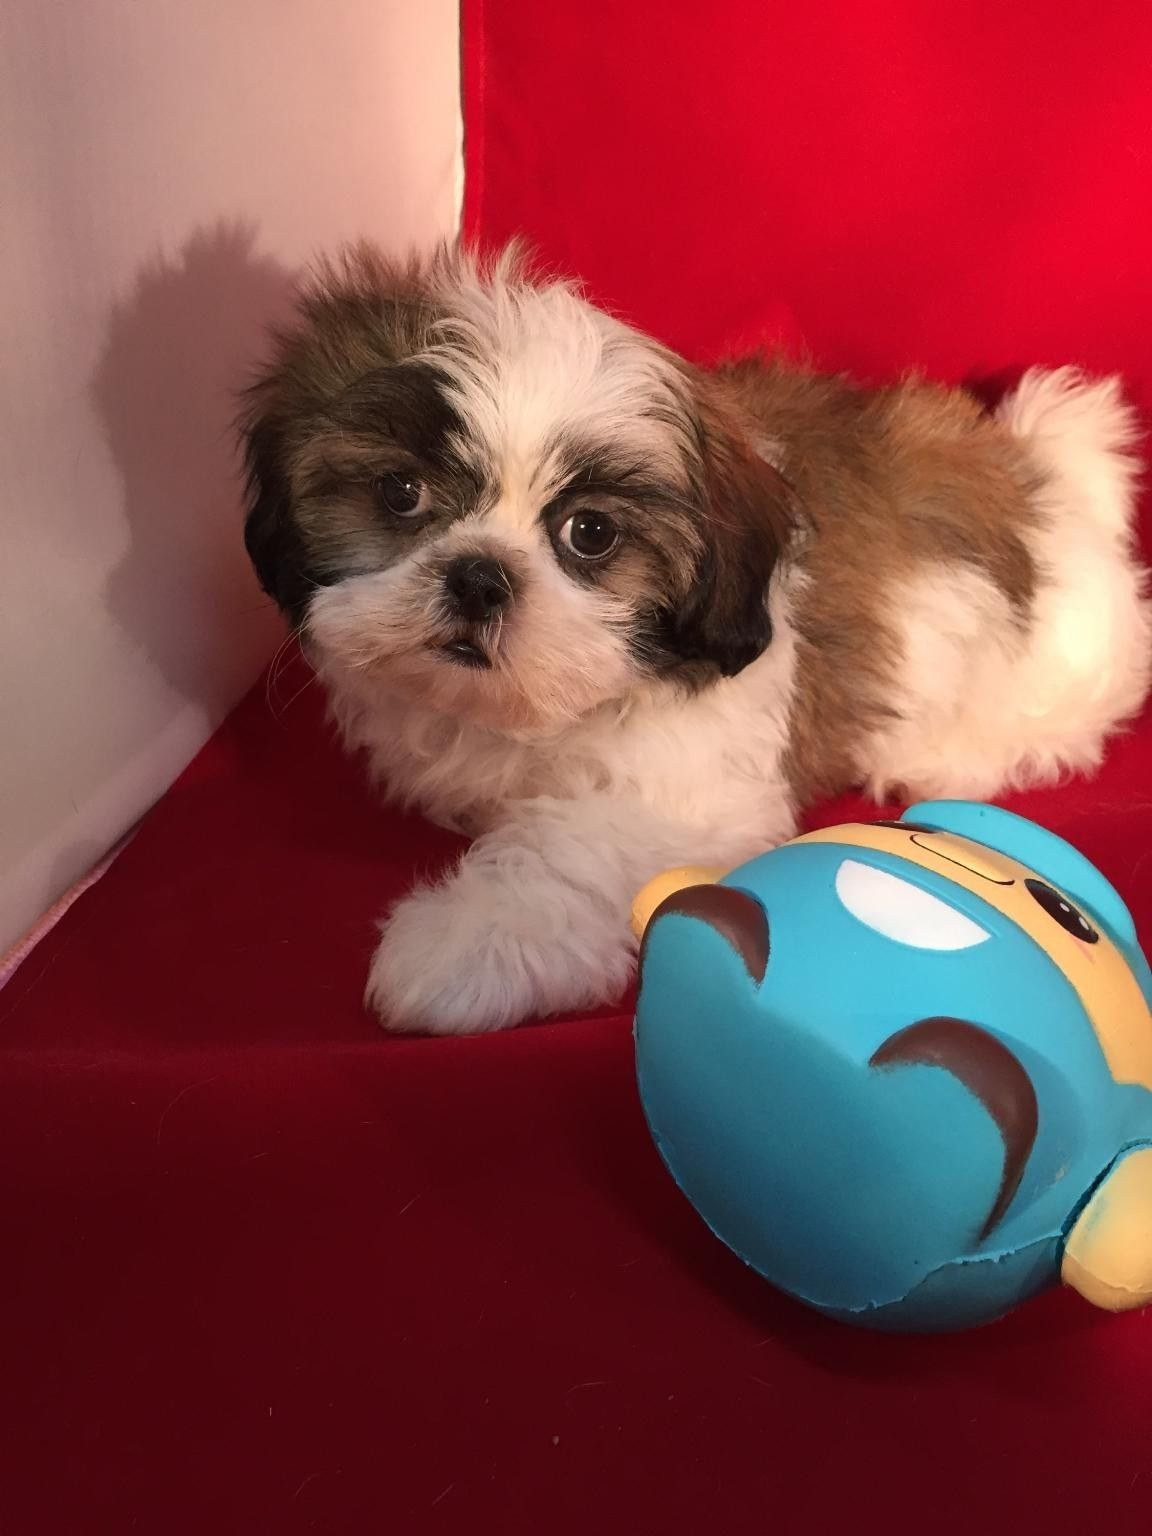 Nyc Shih Tzu Photos Shih Tzu Shih Tzu Puppy Cute Animals